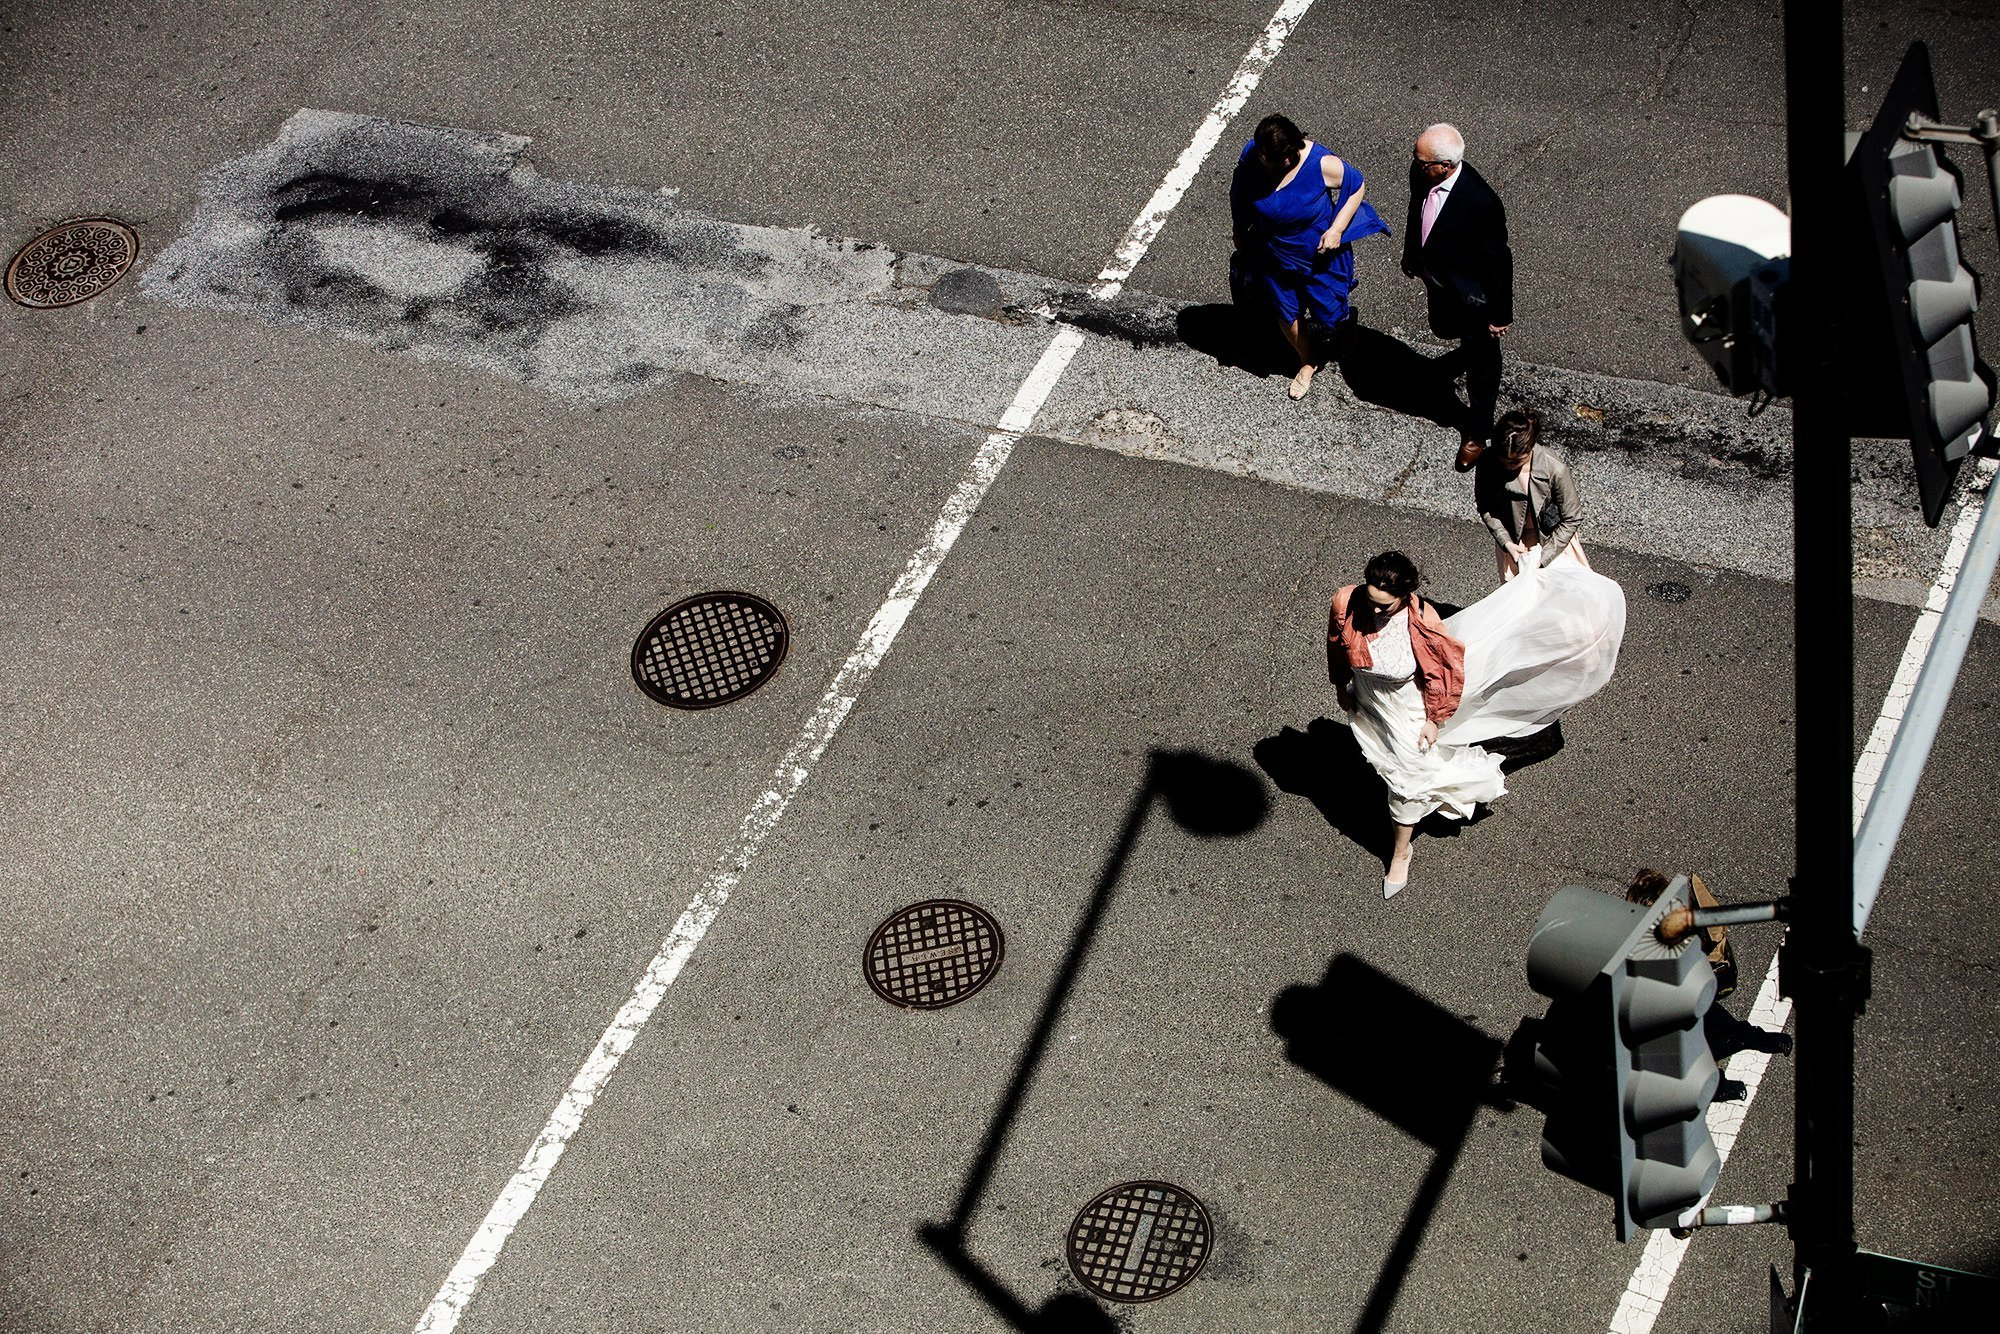 Loft at 600 F Wedding  I  The bride walks through a crosswalk with her family in Washington, DC.